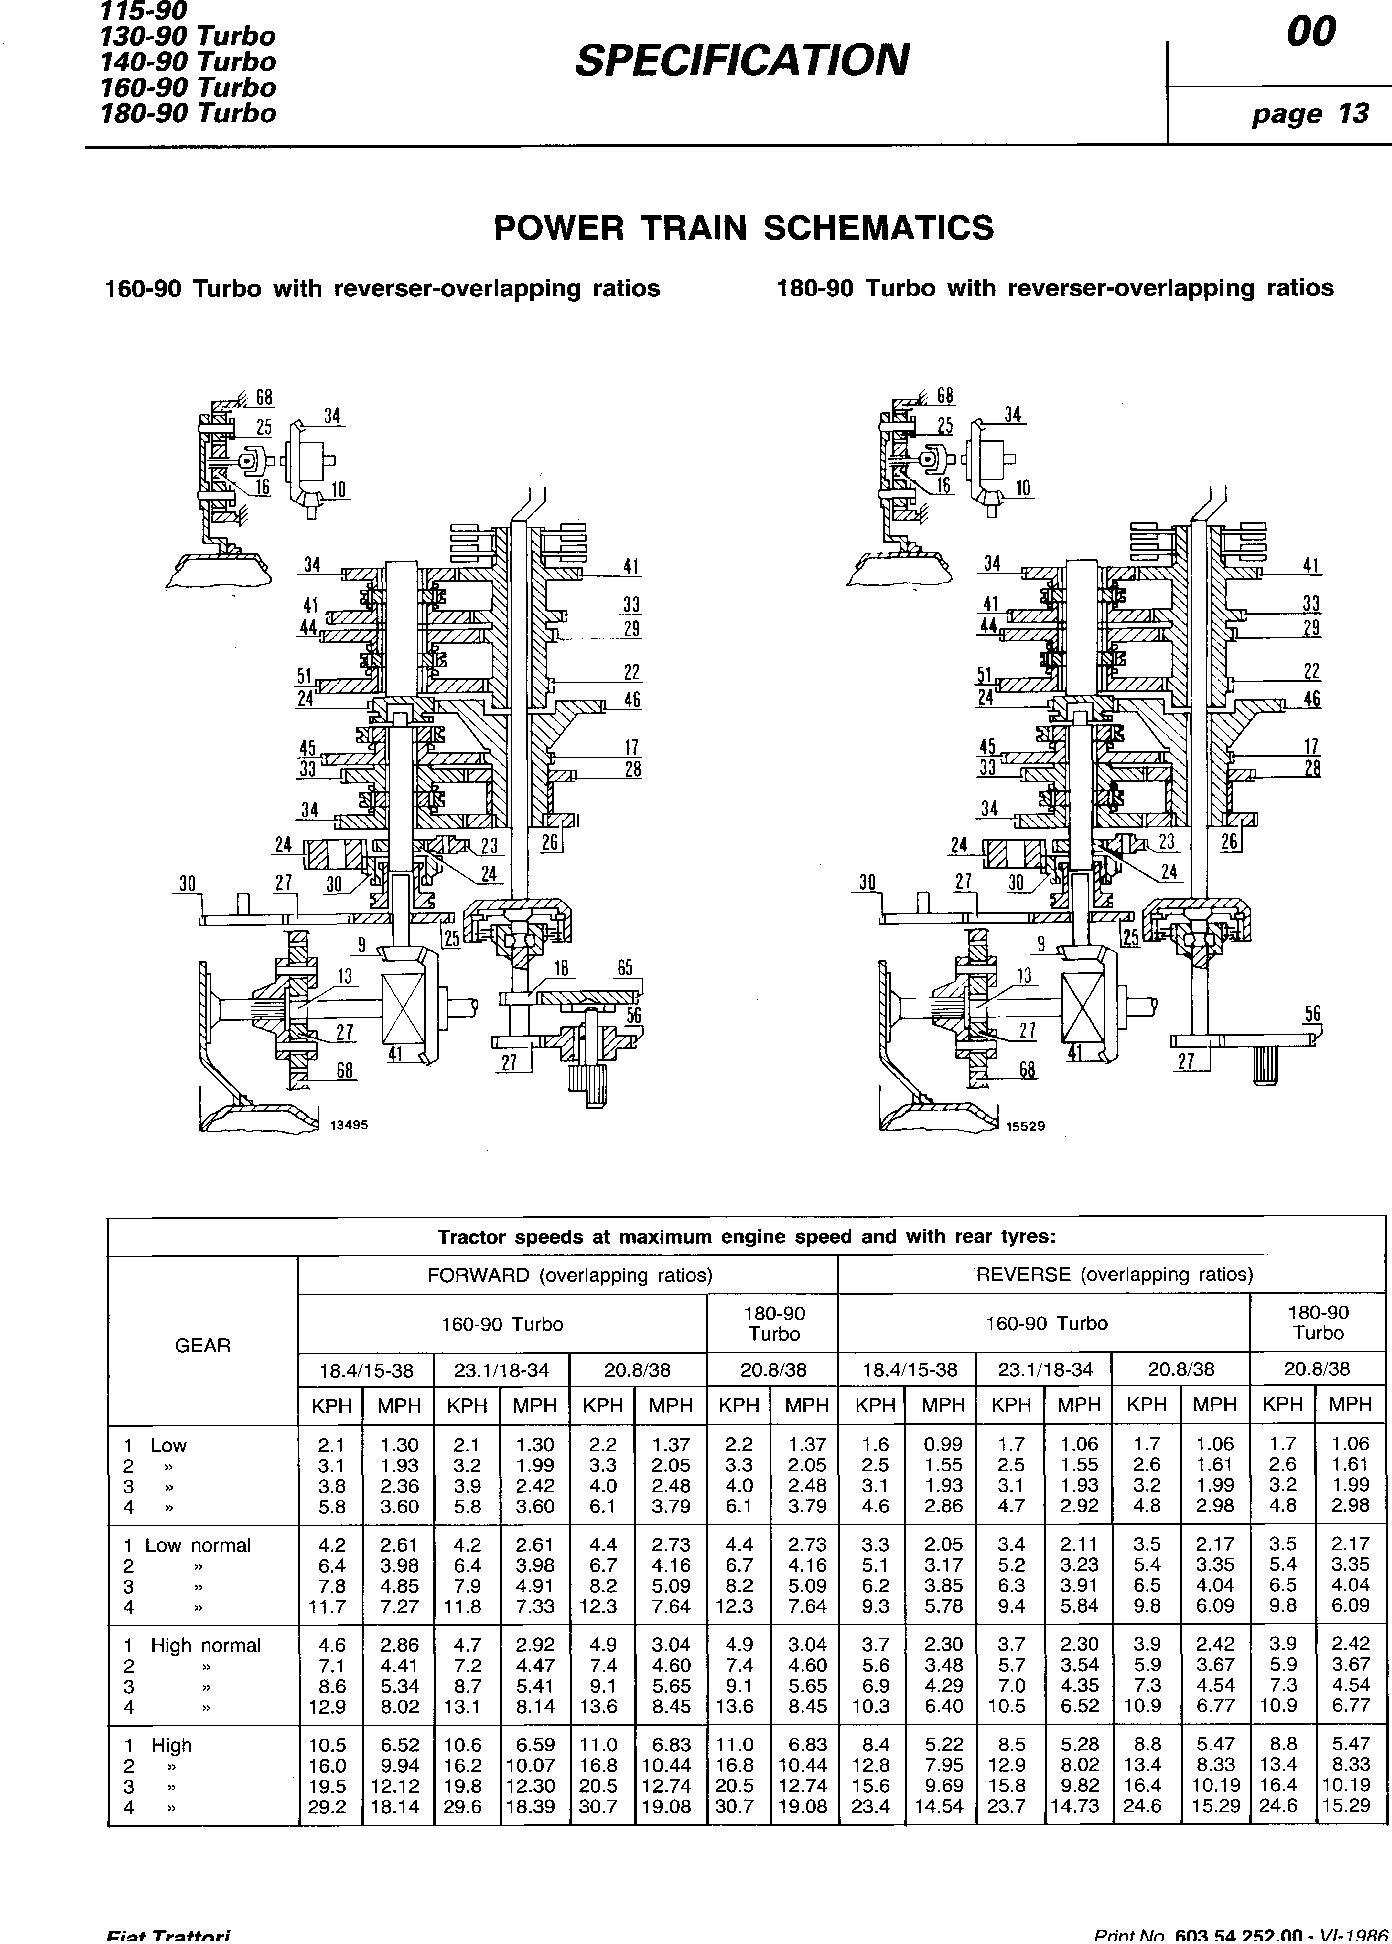 Fiat 115-90, 130-90, 140-90, 160-90, 180-90 Turbo Tractor Service Manual - 2